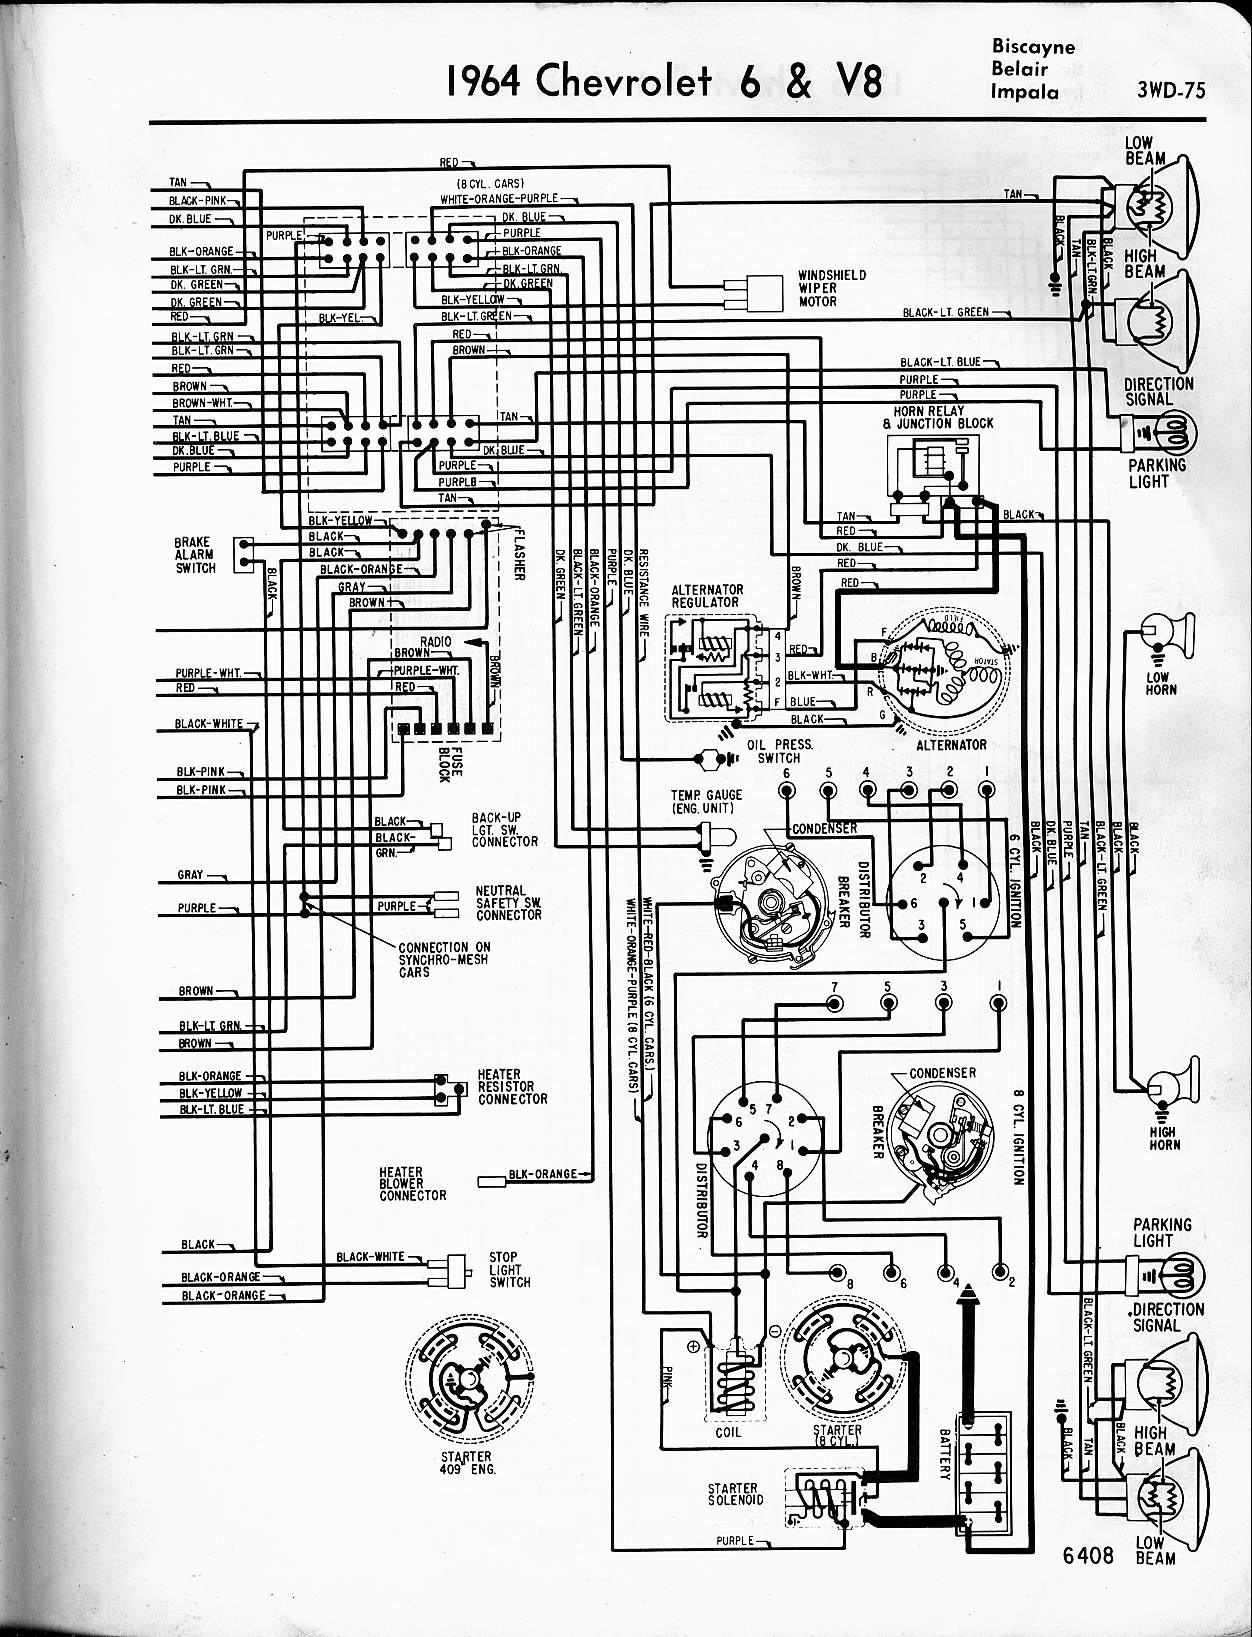 1964 impala fuse panel diagram basic wiring diagram u2022 rh rnetcomputer  co 1991 Chevy S10 Fuse Box Diagram 2006 Chevy HHR Fuse Box Diagram